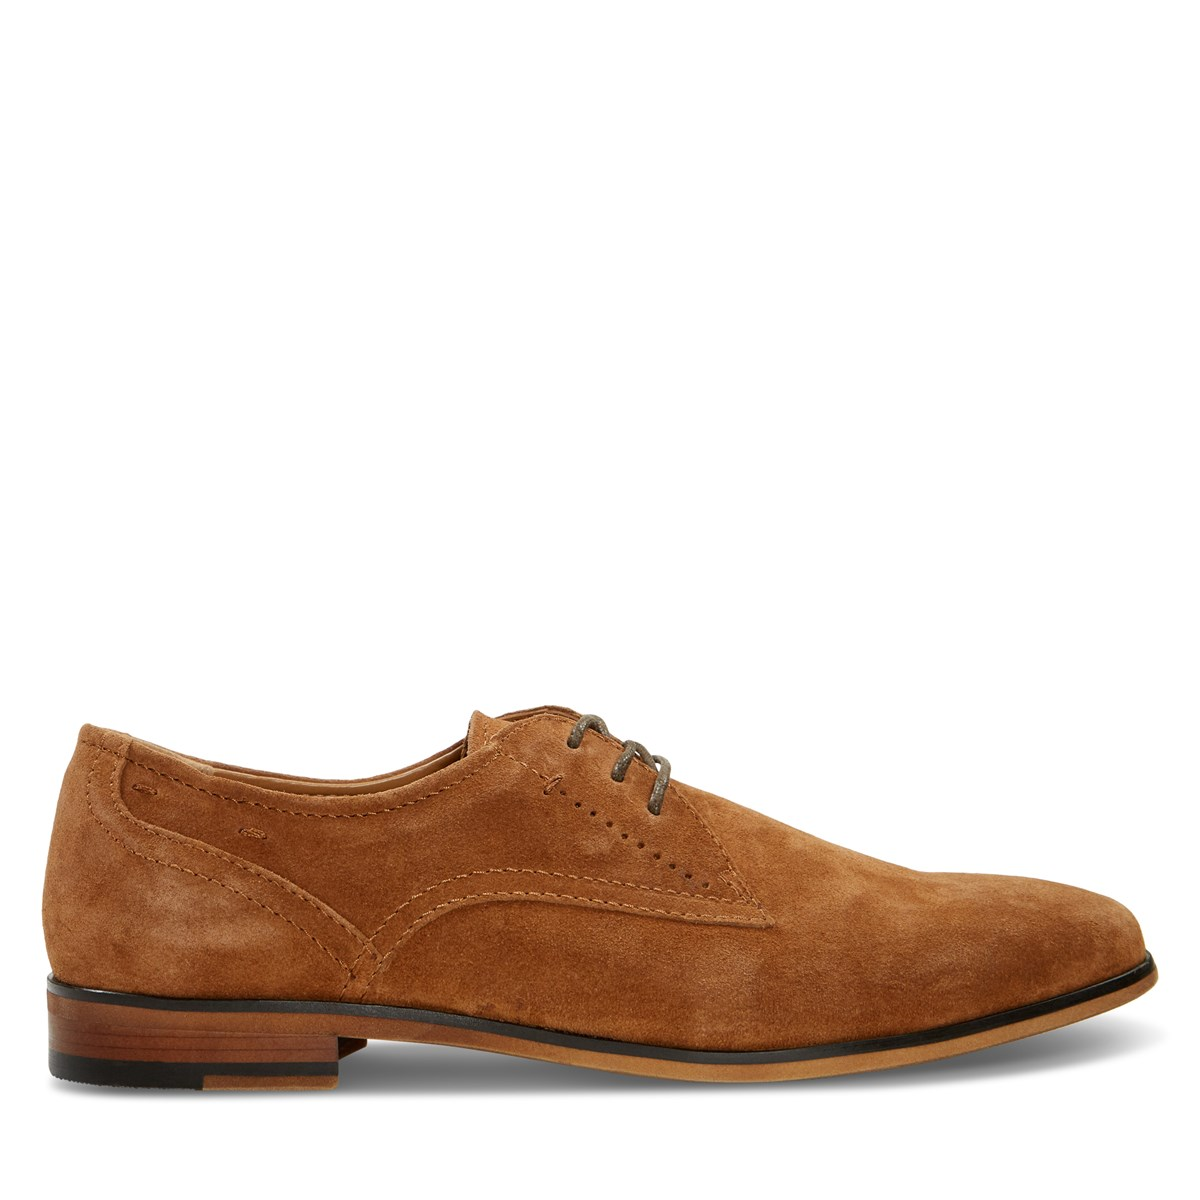 Men's Derby Shoe in Brown